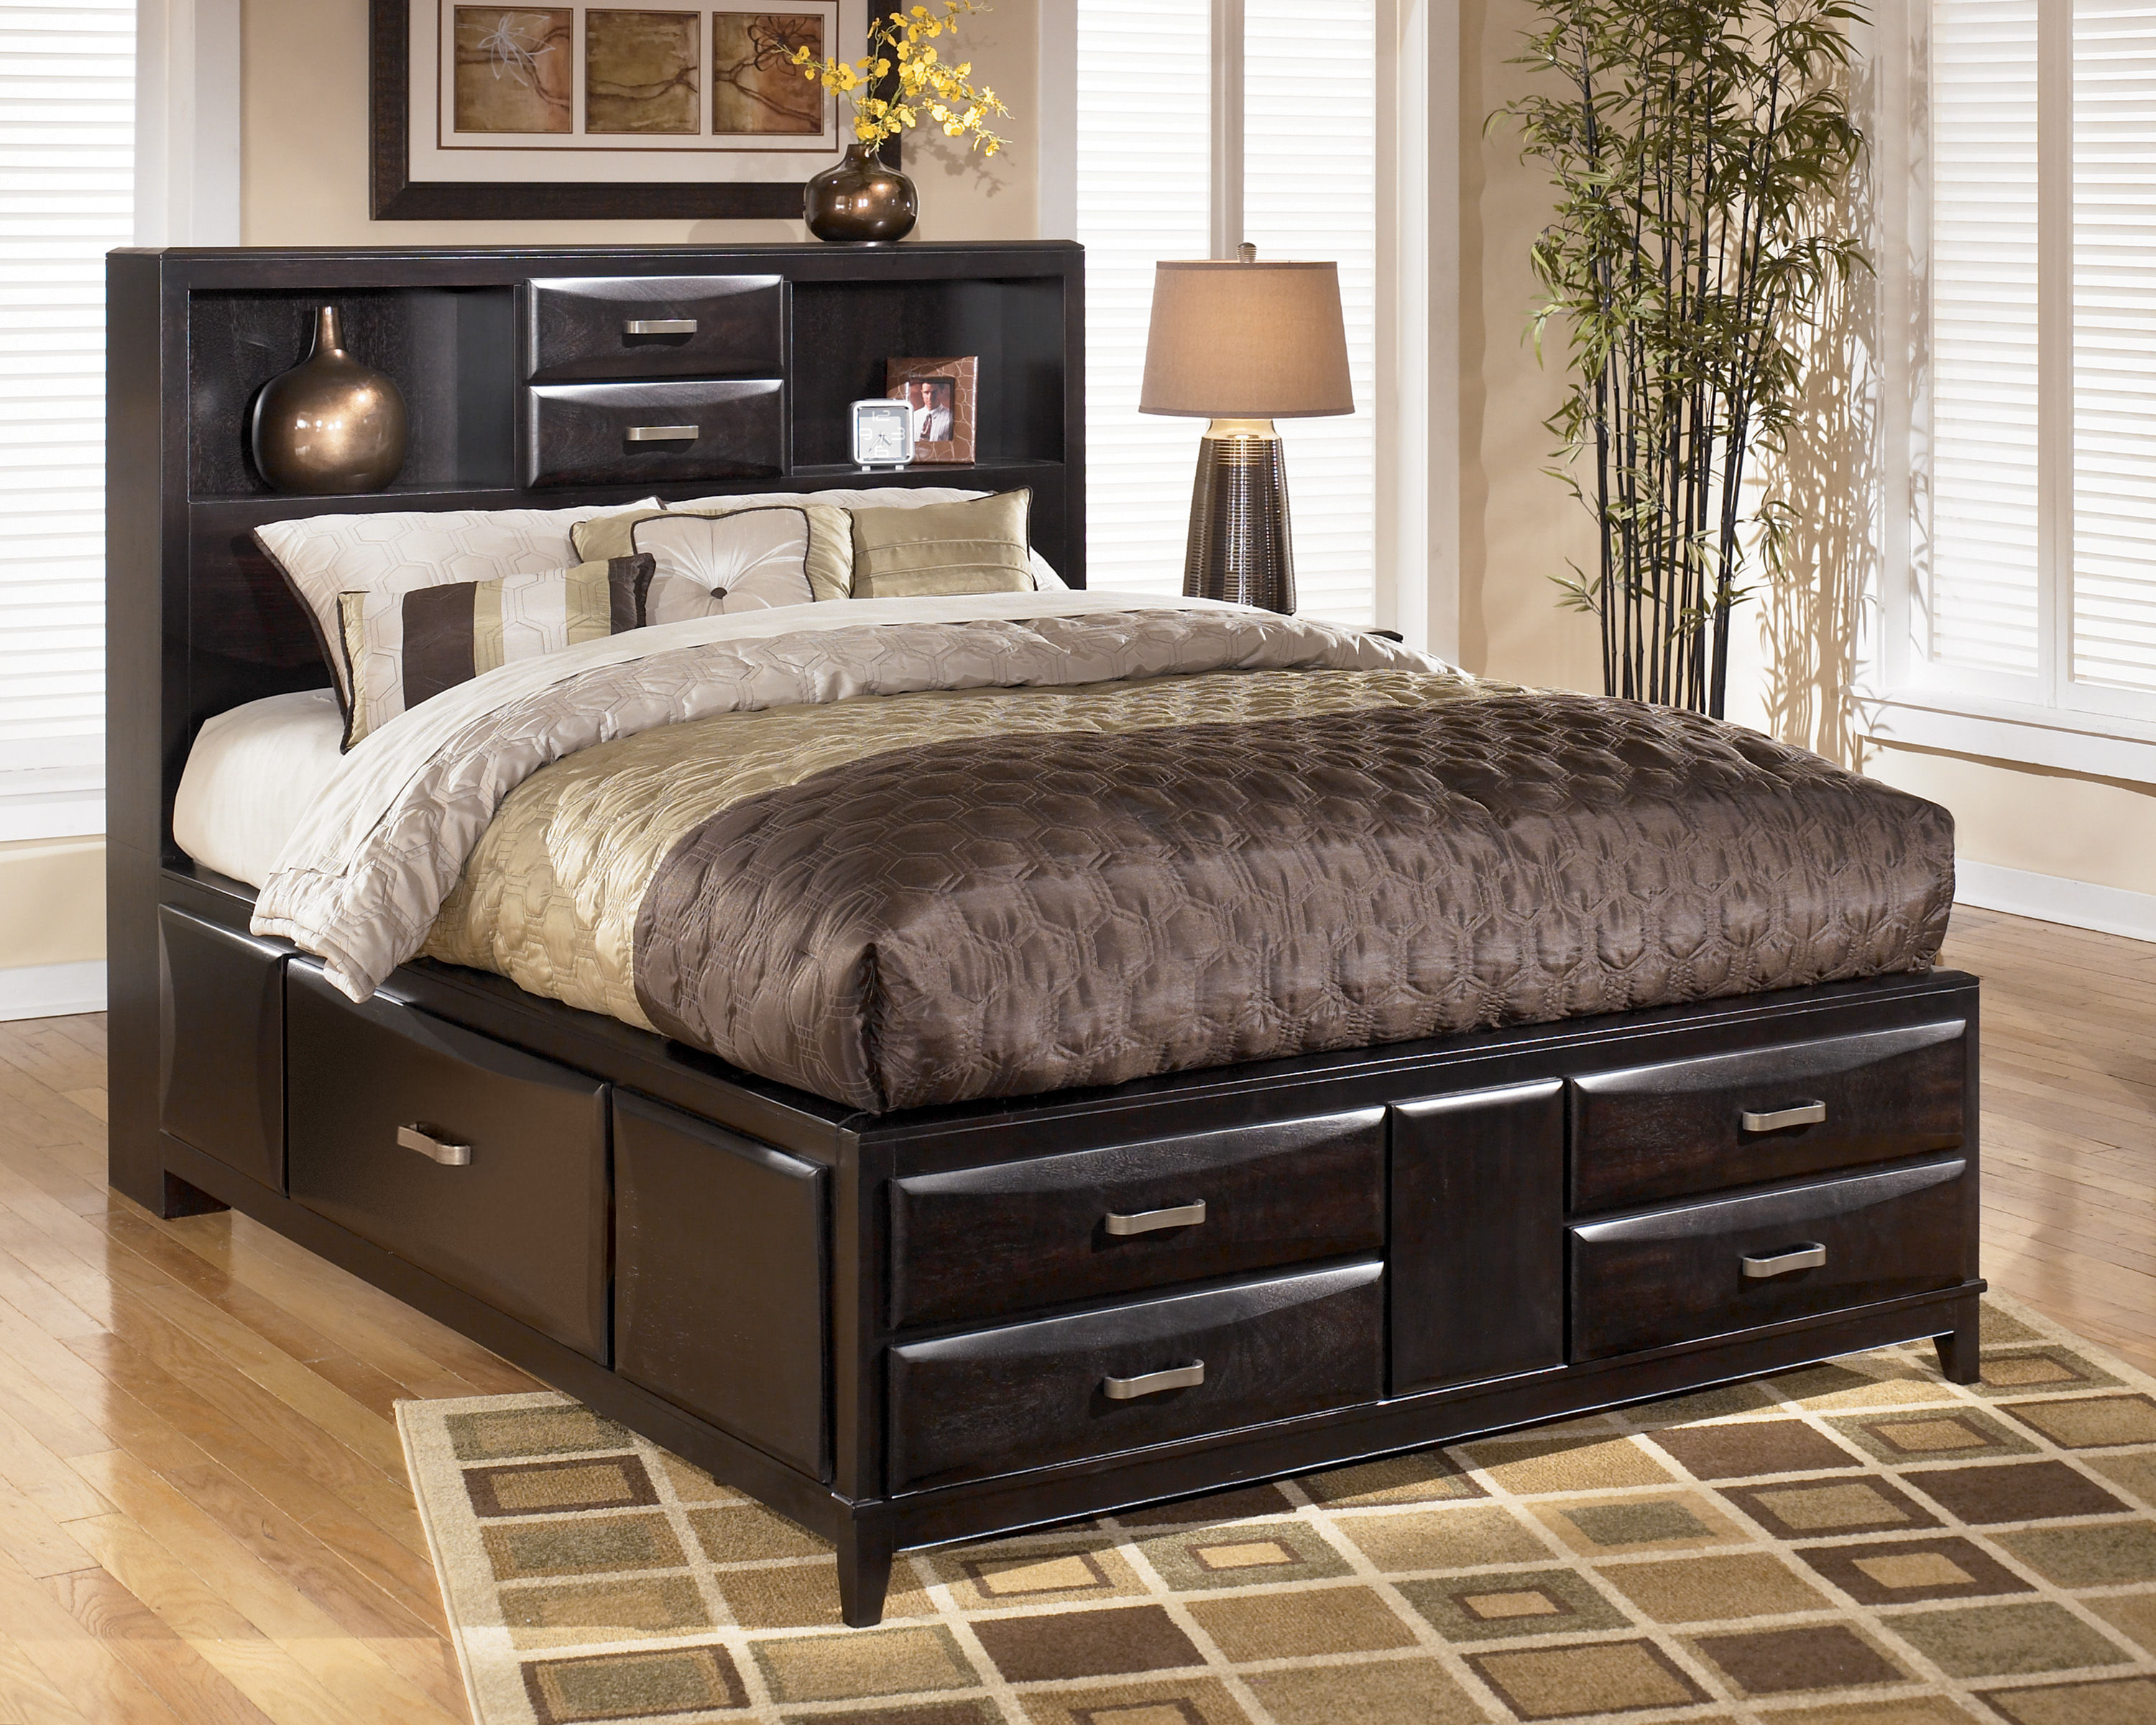 Ashley Furniture Kira Queen Storage Bed The Classy Home